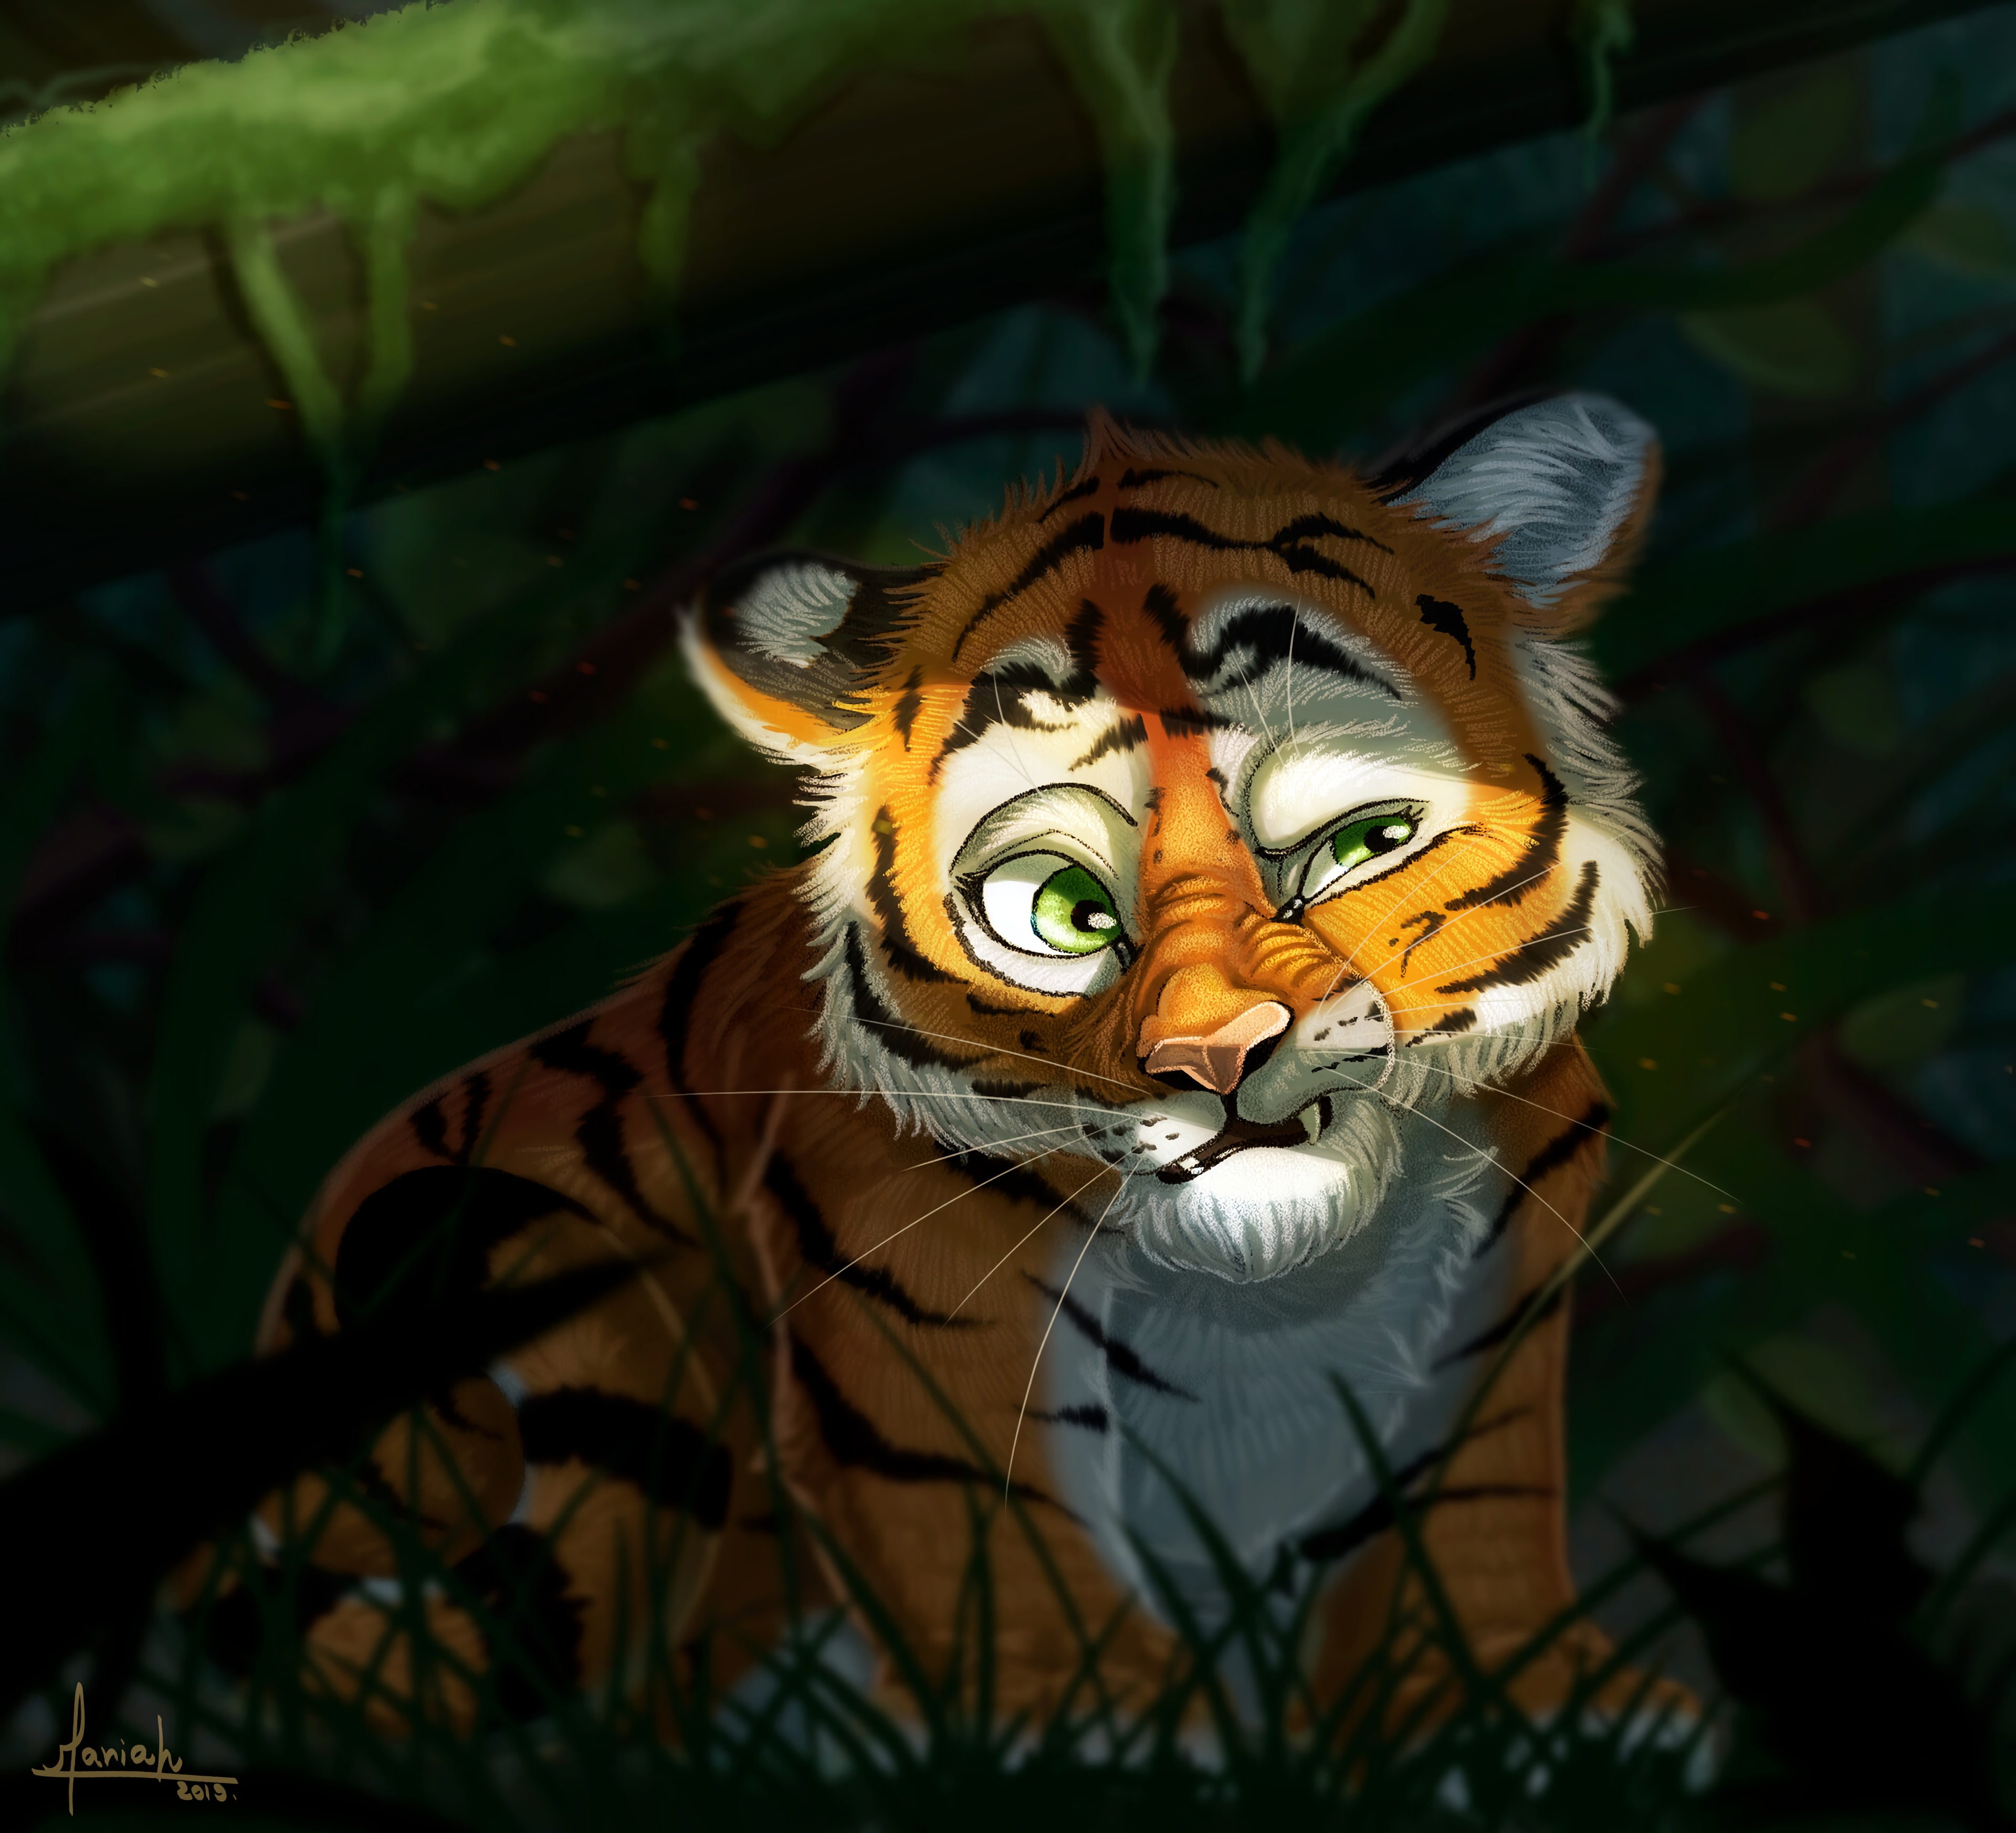 122313 Screensavers and Wallpapers Emotions for phone. Download Art, Tiger, Emotions, Tiger Cub pictures for free